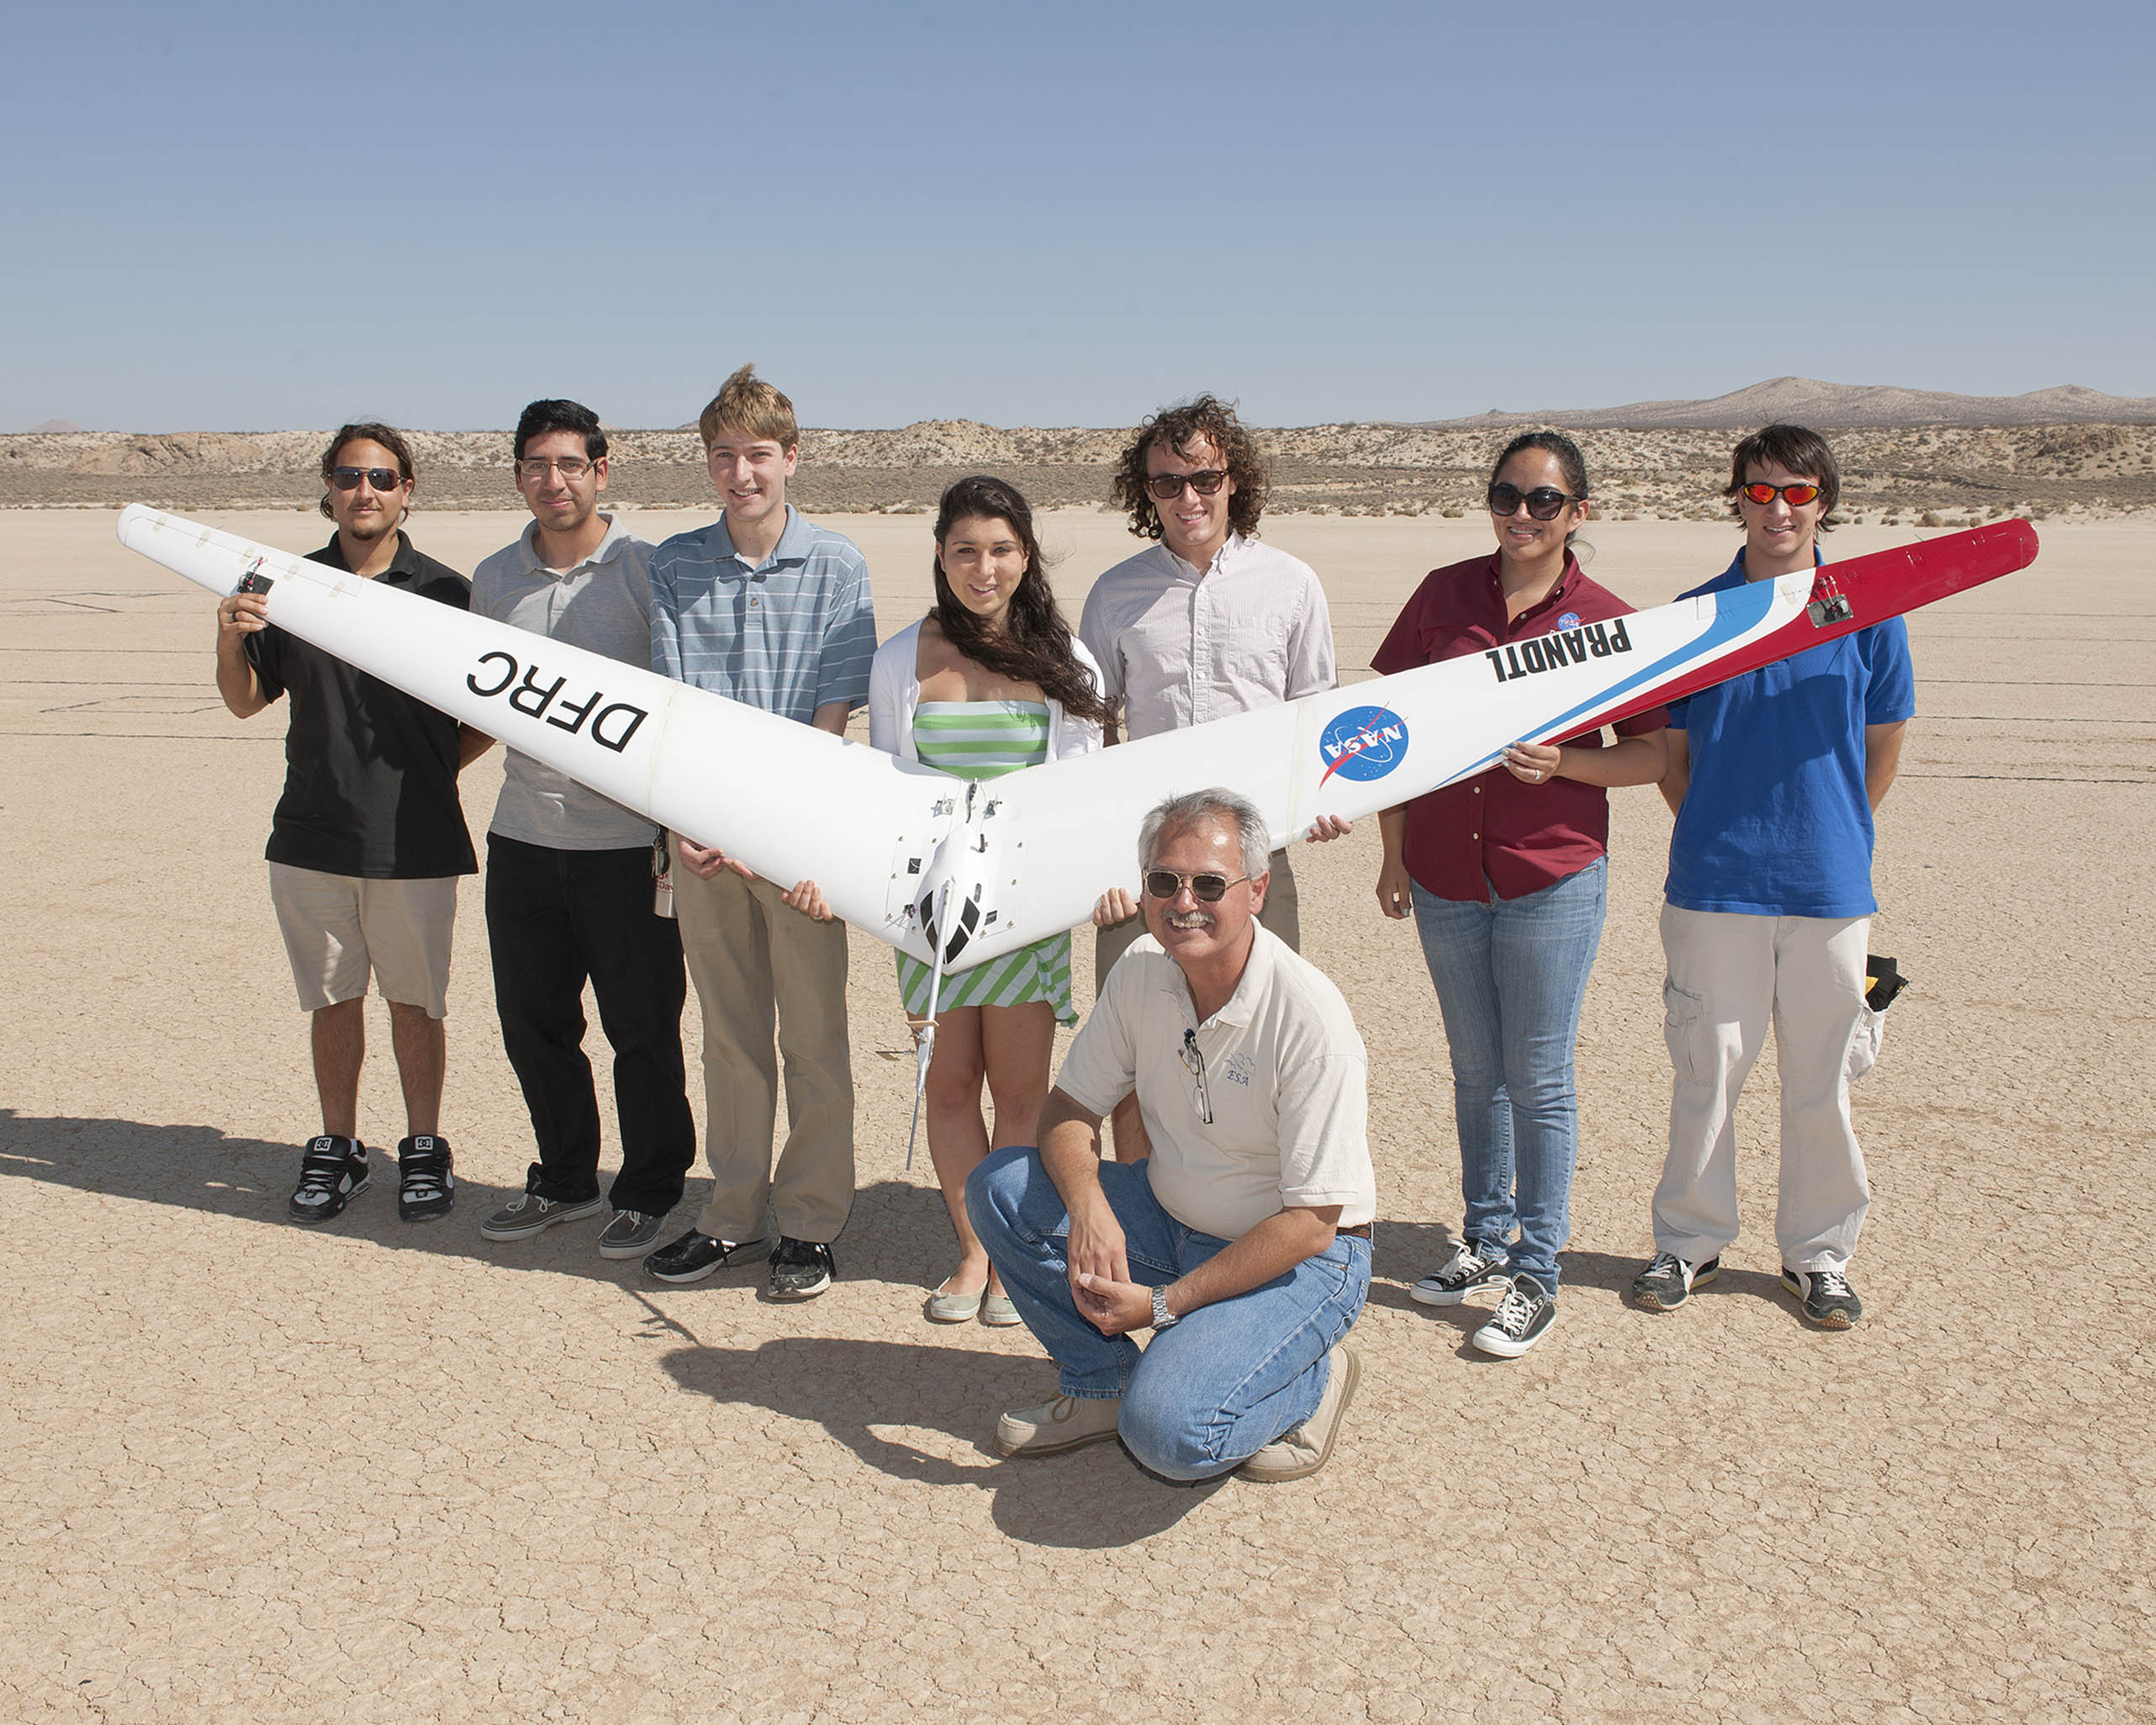 NASA Dryden's Al Bowers and some of the students he mentored in the 2013 NASA Aeronautics Academy display the second subscale Prandtl-D flying wing following its first test flight last August. (NASA / Tom Tschida)